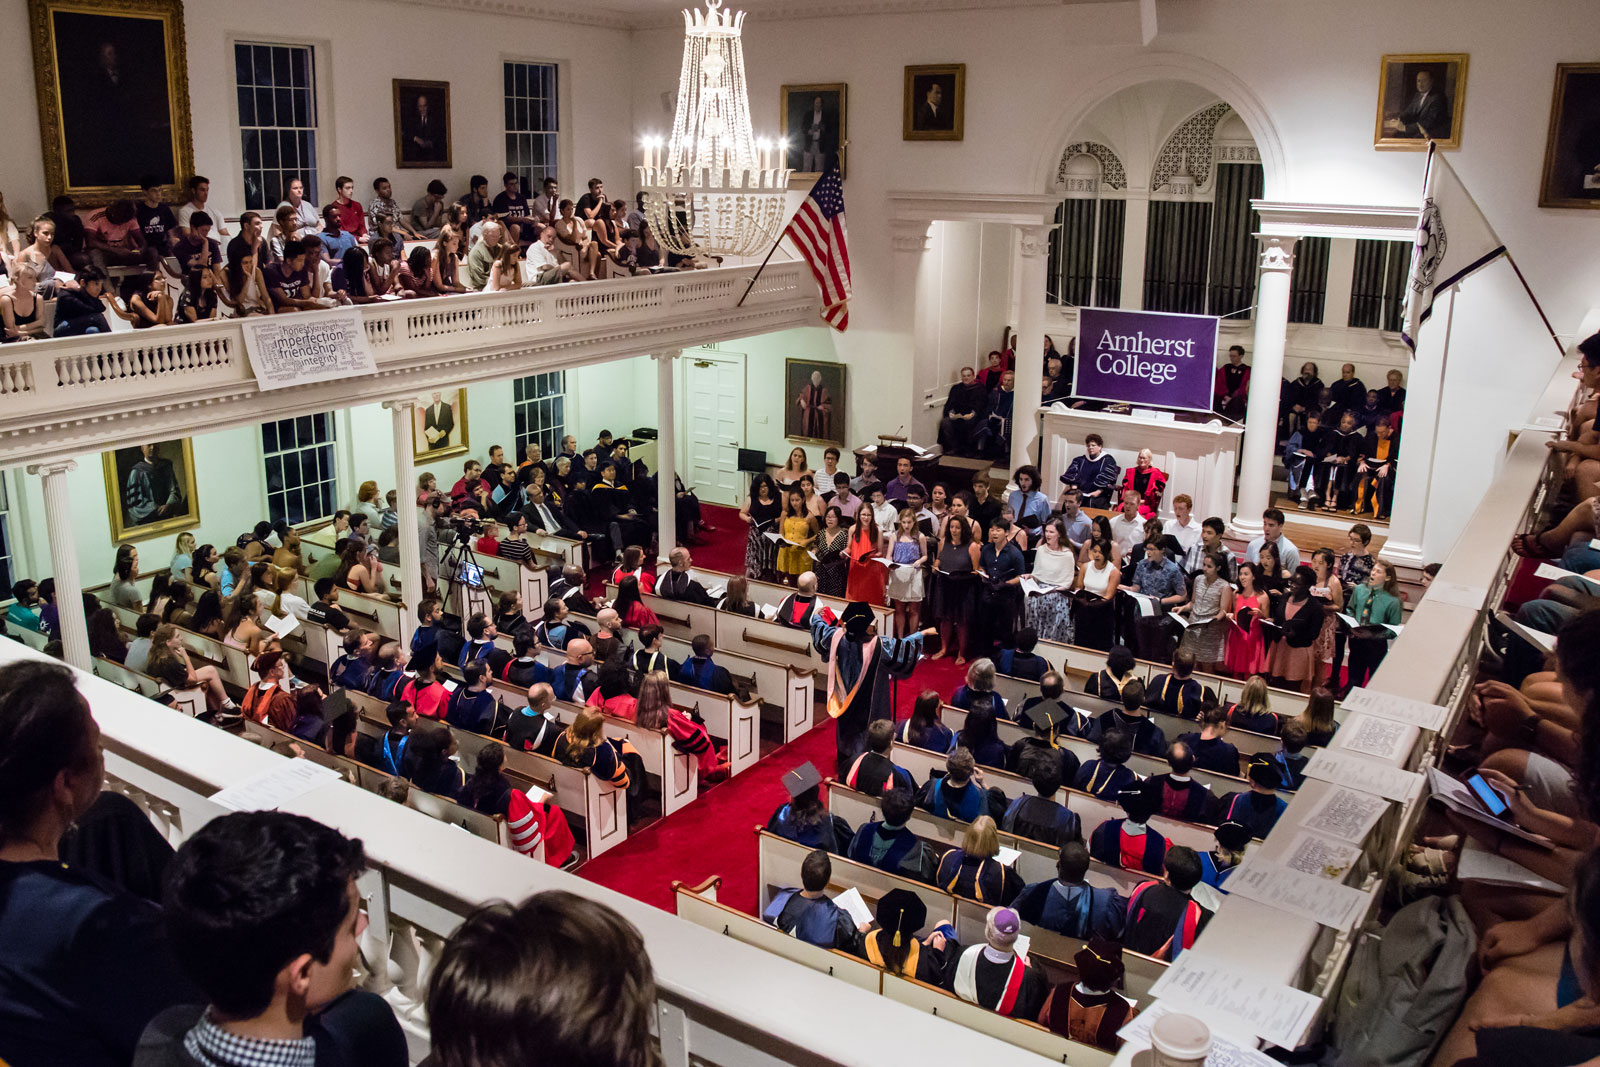 The crowd in Johnson Chapel, viewed from the balconey